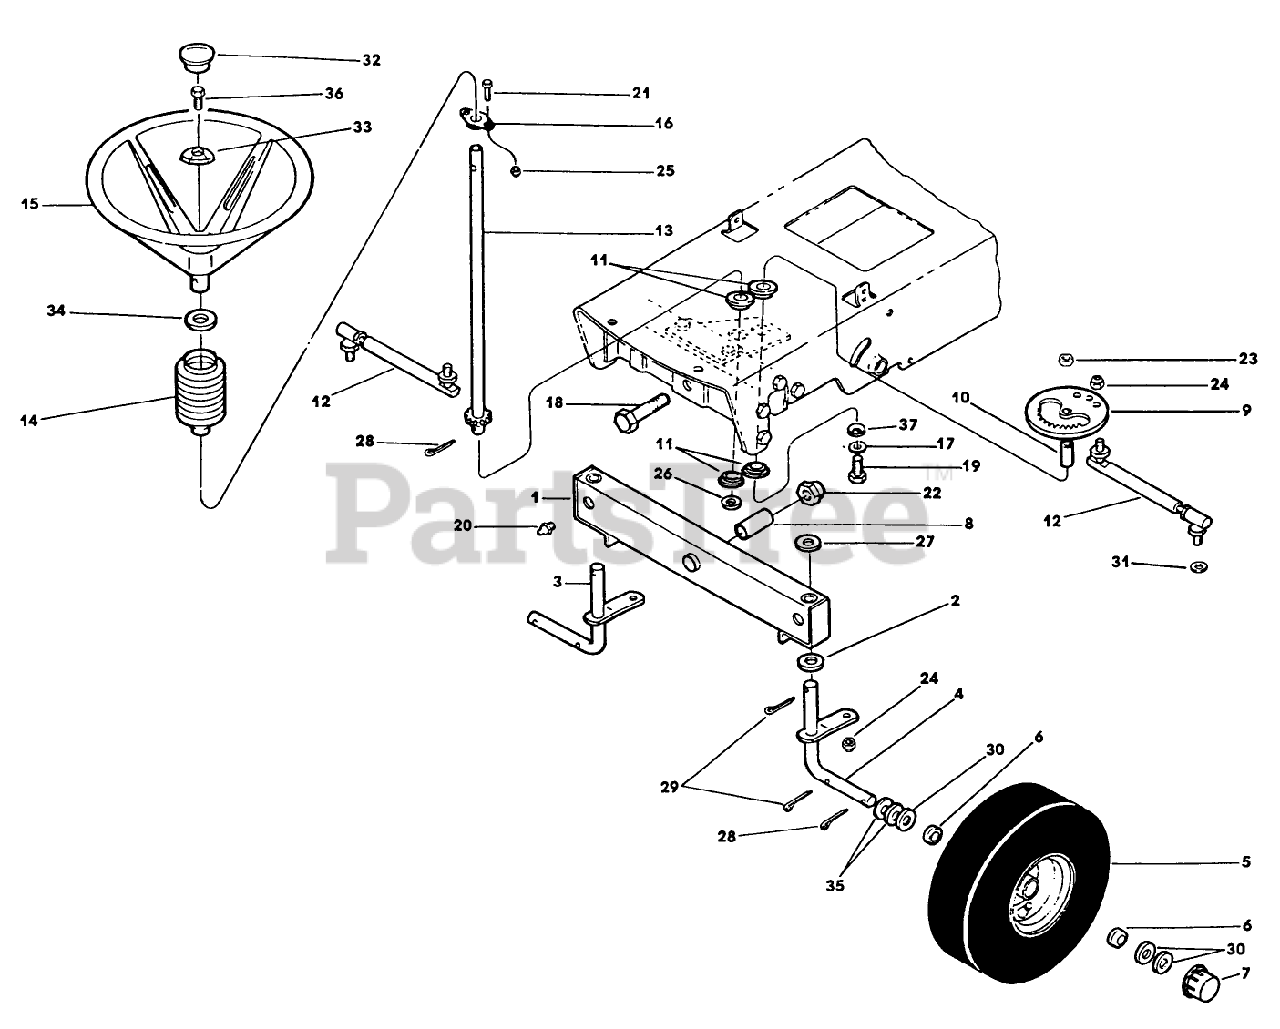 [DIAGRAM] Bad Boy Buggy Front End Parts Diagram FULL